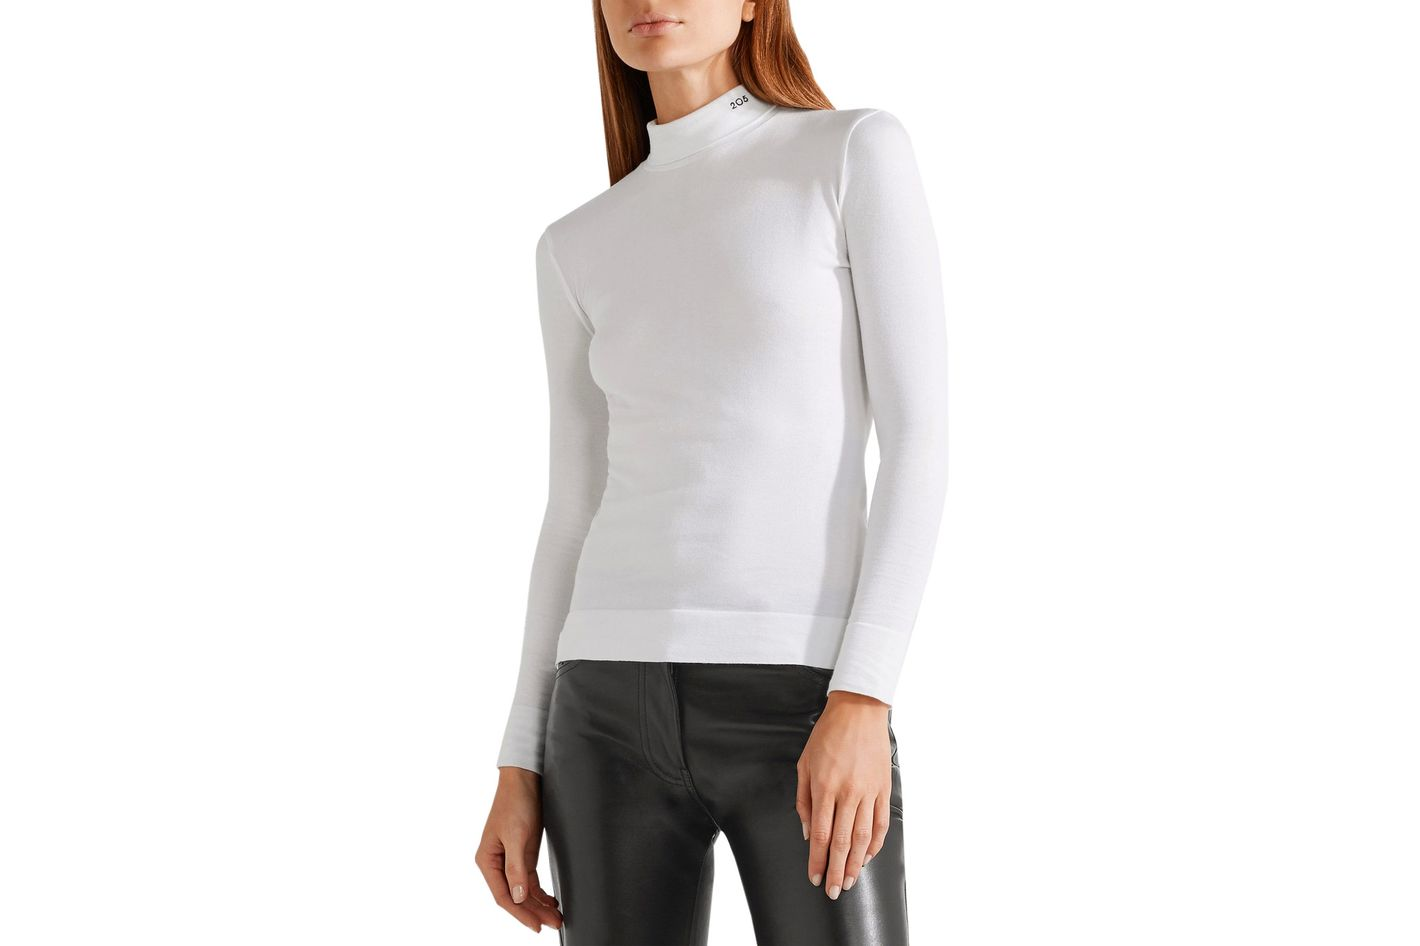 Calvin Klein 205W39NYC Embroidered Turtleneck